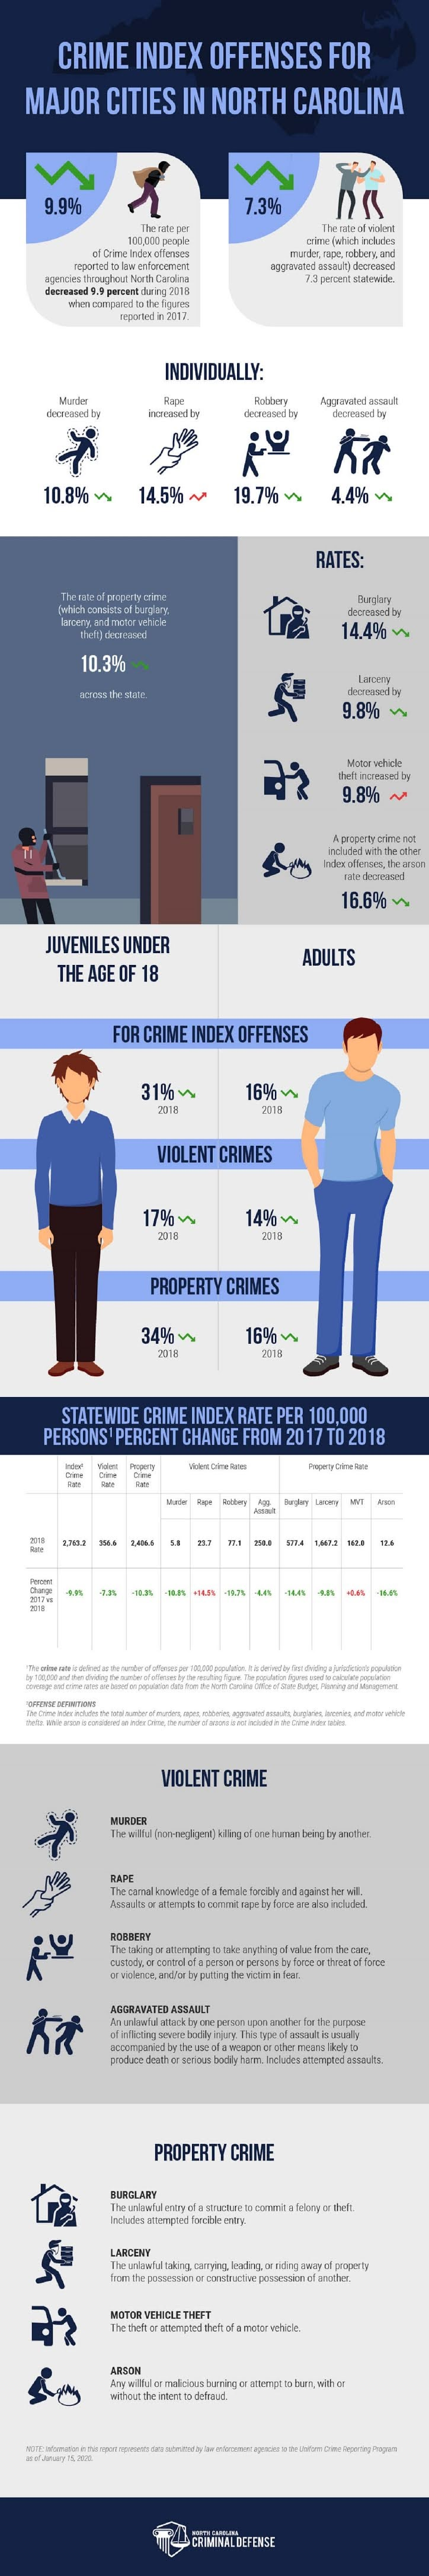 Is Crime on the Rise? Top Crime Statistics of North Carolina's Biggest Cities #infographic